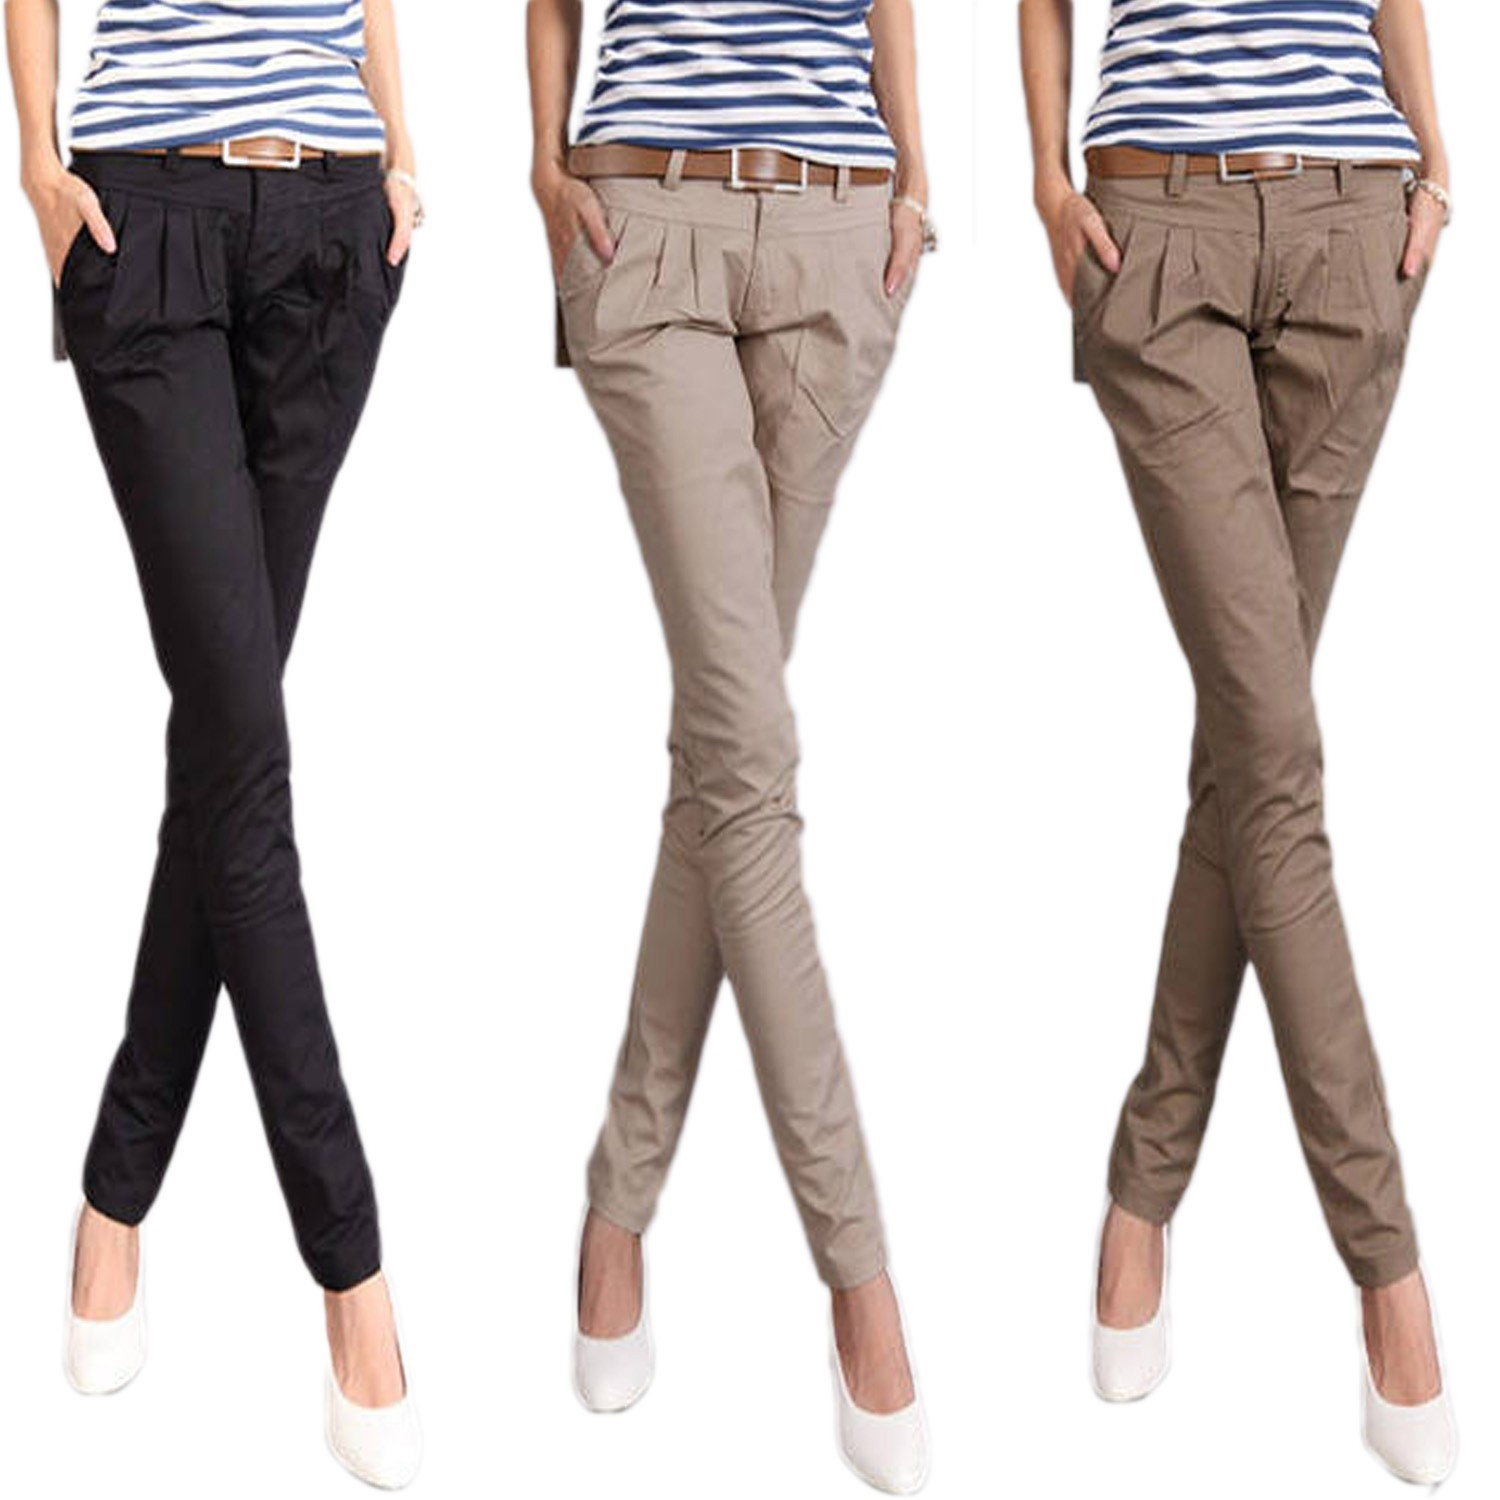 Free shipping on trouser & wide-leg pants for women at tentrosegaper.ga Shop for wide-leg pants & trousers in the latest colors & prints from top brands like Topshop, tentrosegaper.ga, NYDJ, Vince Camuto & more. Enjoy free shipping & returns.